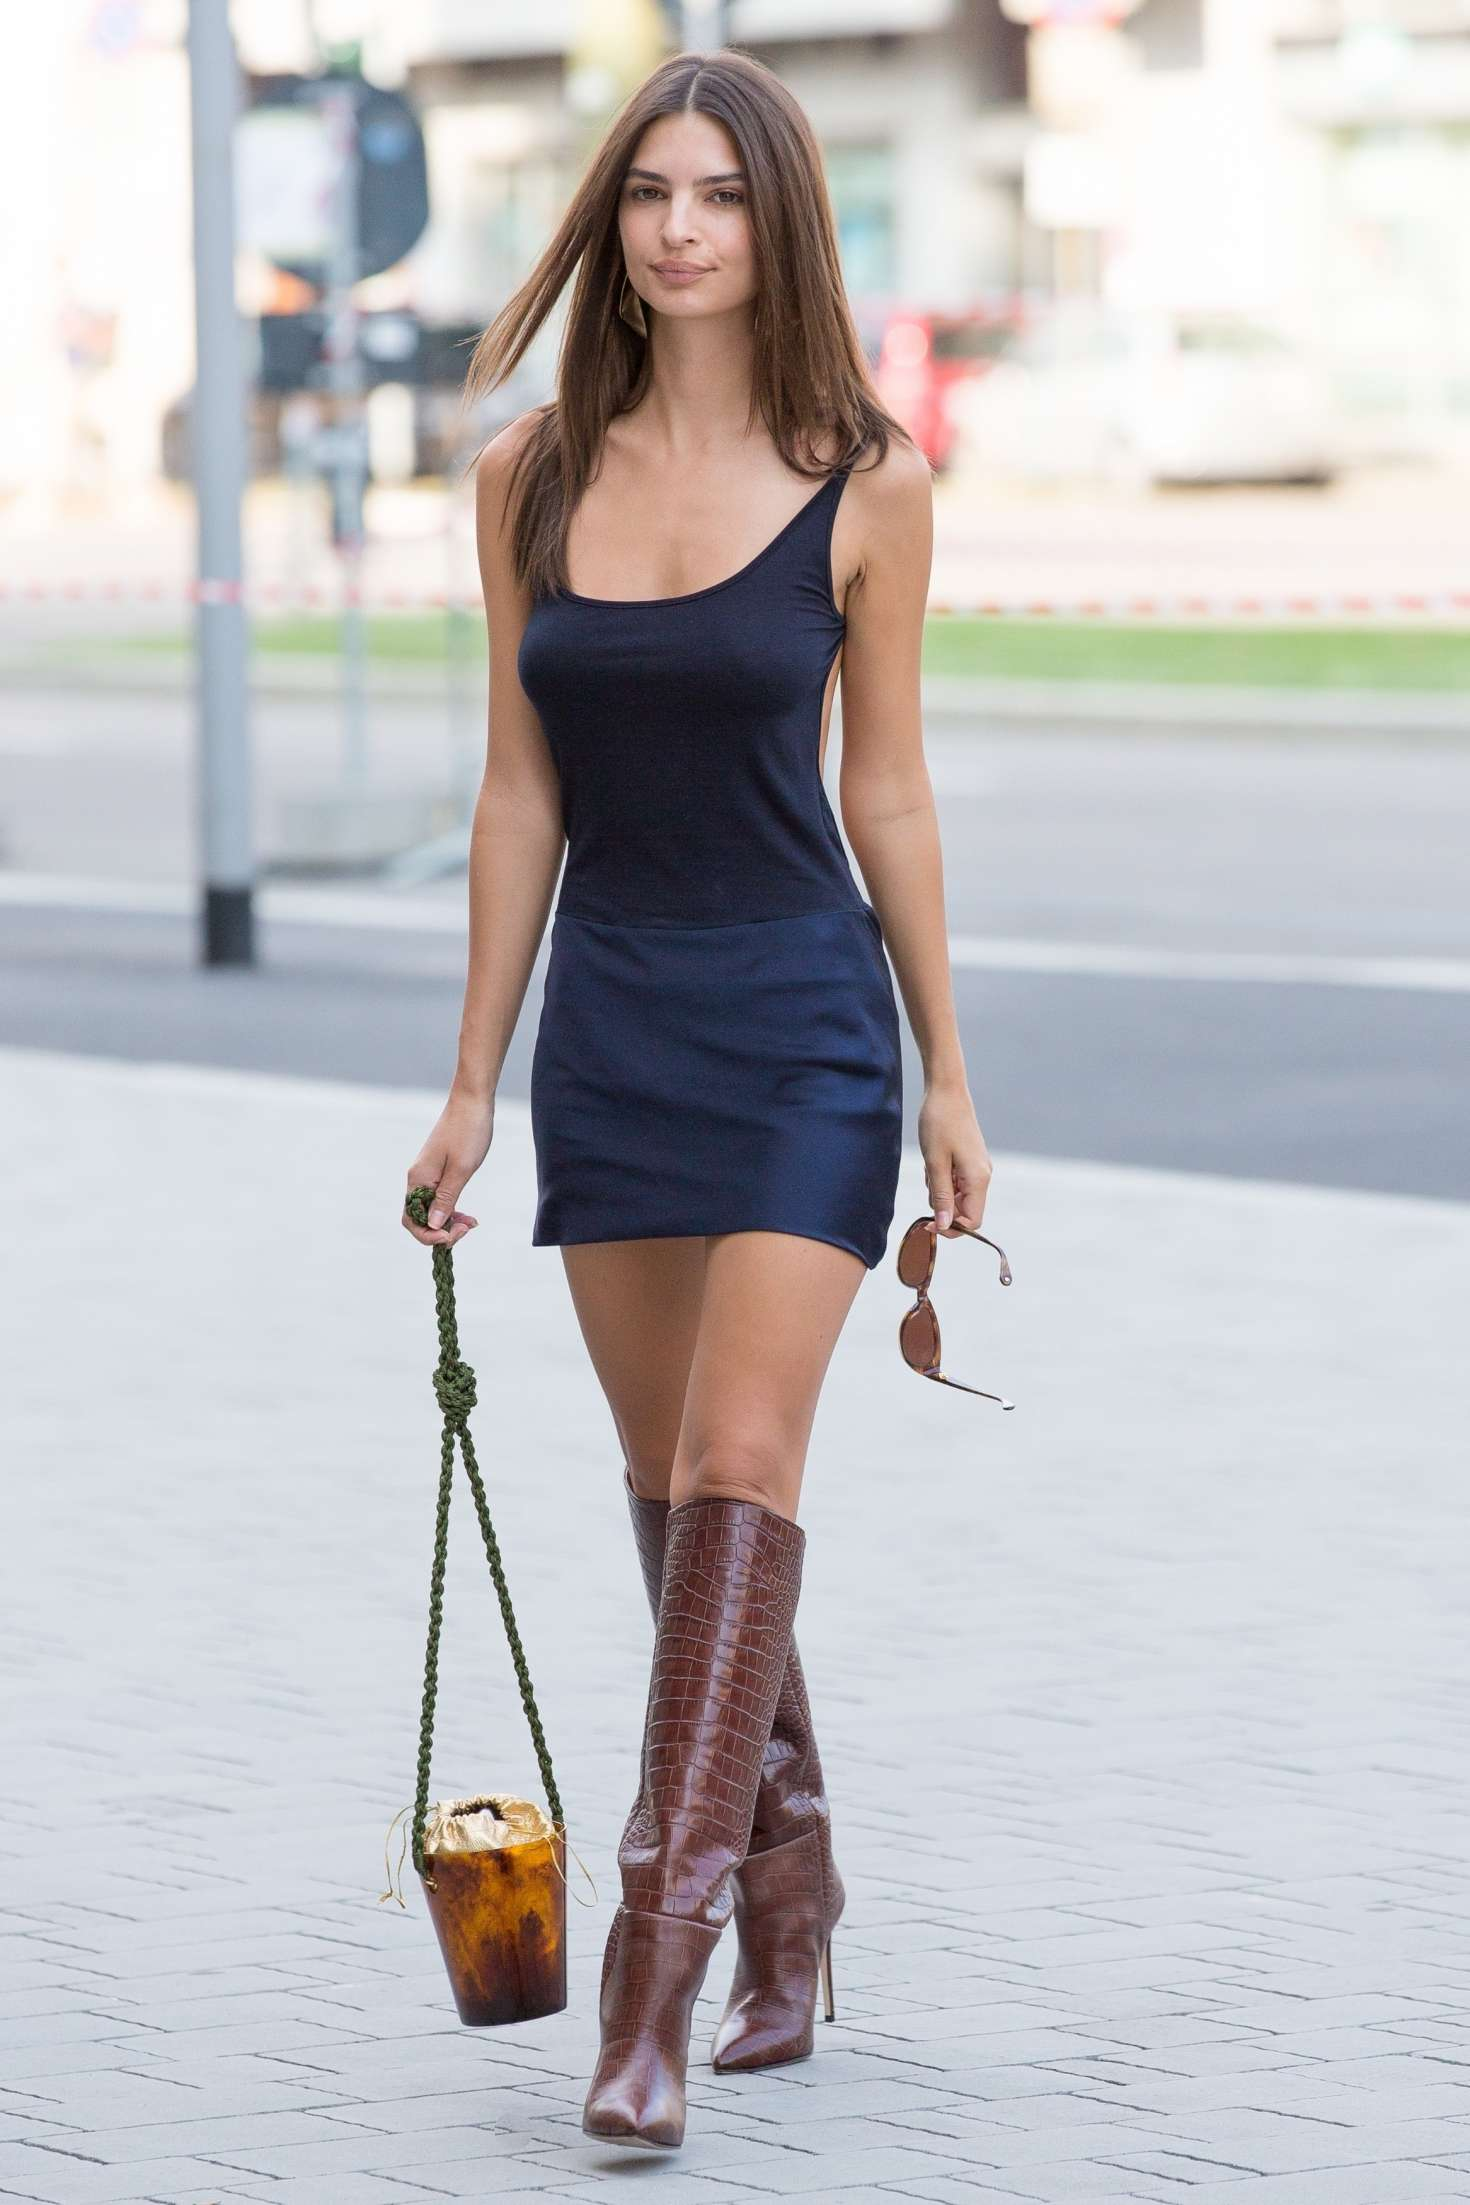 Emily Ratajkowski in Short Dress – Arriving at the Versace Show in Milan